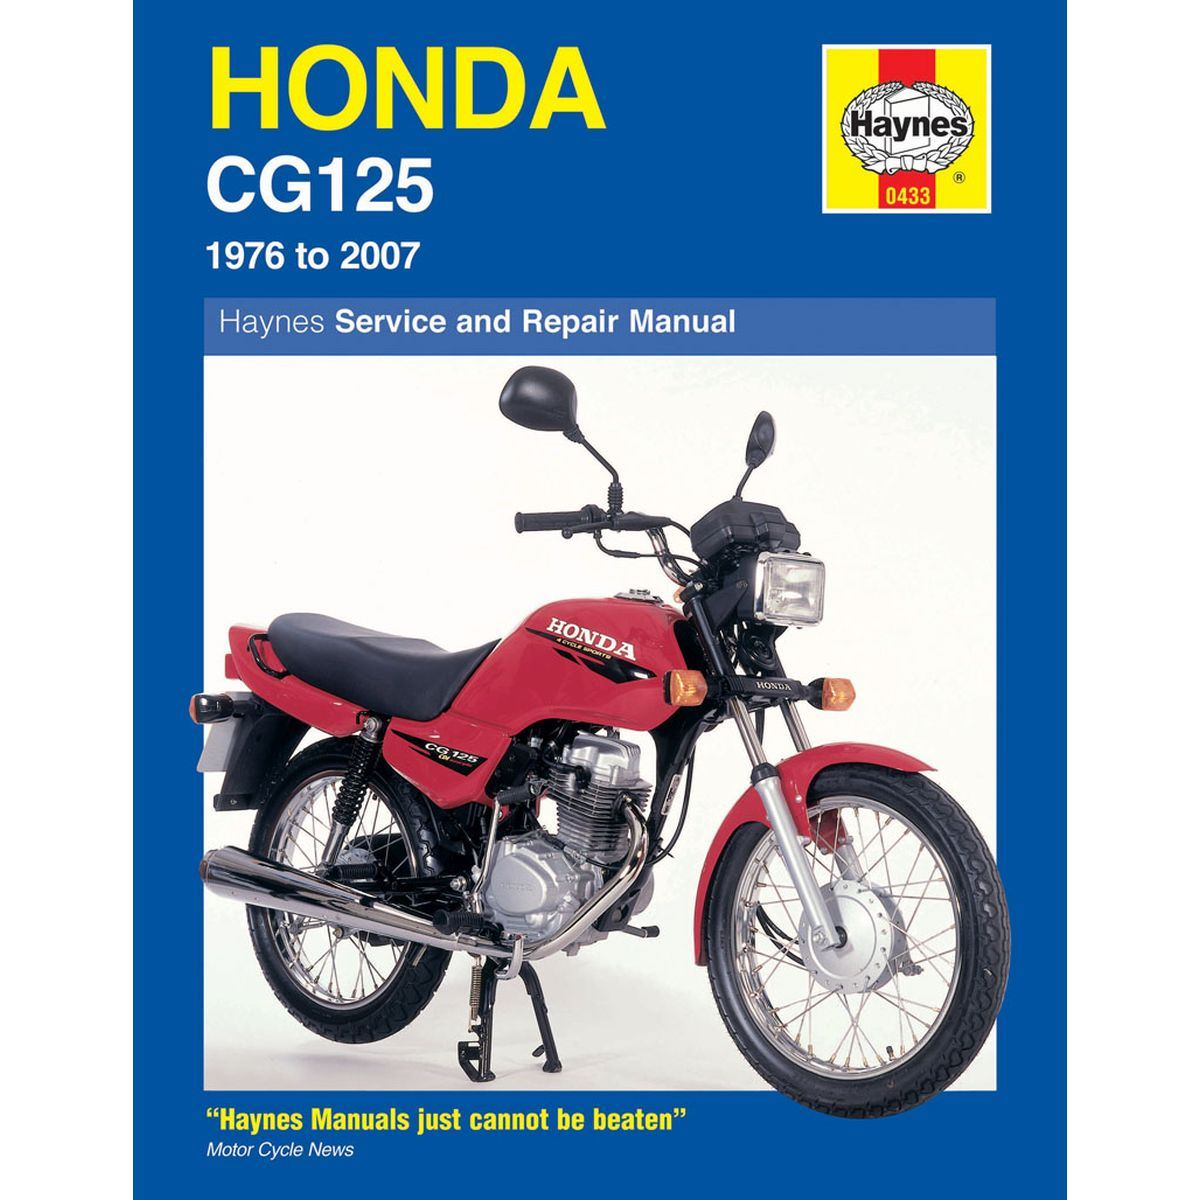 workshop manual honda cg125 1976 2007  u00a313 16 picclick uk workshop manual honda innova workshop manual honda innova